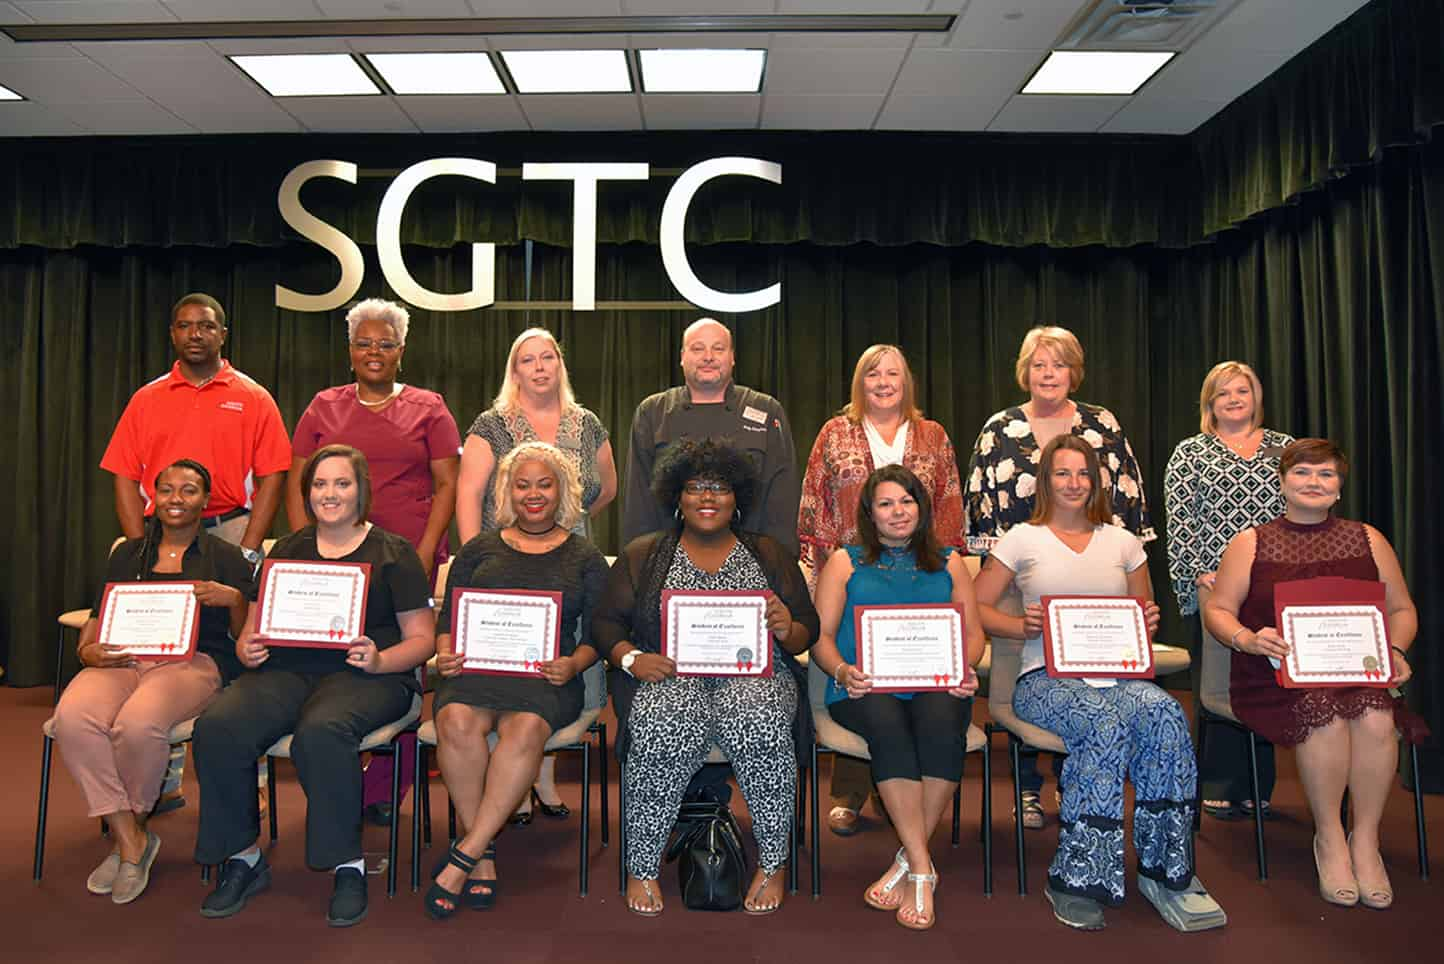 Student of Excellence nominees sit in chairs holding certificates in front of their nominating instructors. Seated left to right: : SGTC Student of Excellence nominees Lashanda Bobbs, Francis Gill, Anaiah Kirkland, Tiara Reese, Melisa Flakes, Shannon Cranford and Sheri Ariail. Standing left to right: Nominating Instructors Xavier Jackson, Dorothea Lusane-Mckenzie, Teresa McCook, Ricky Watzlowick, Jaye Cripe, Lynn Lightner and Christine Rundle.